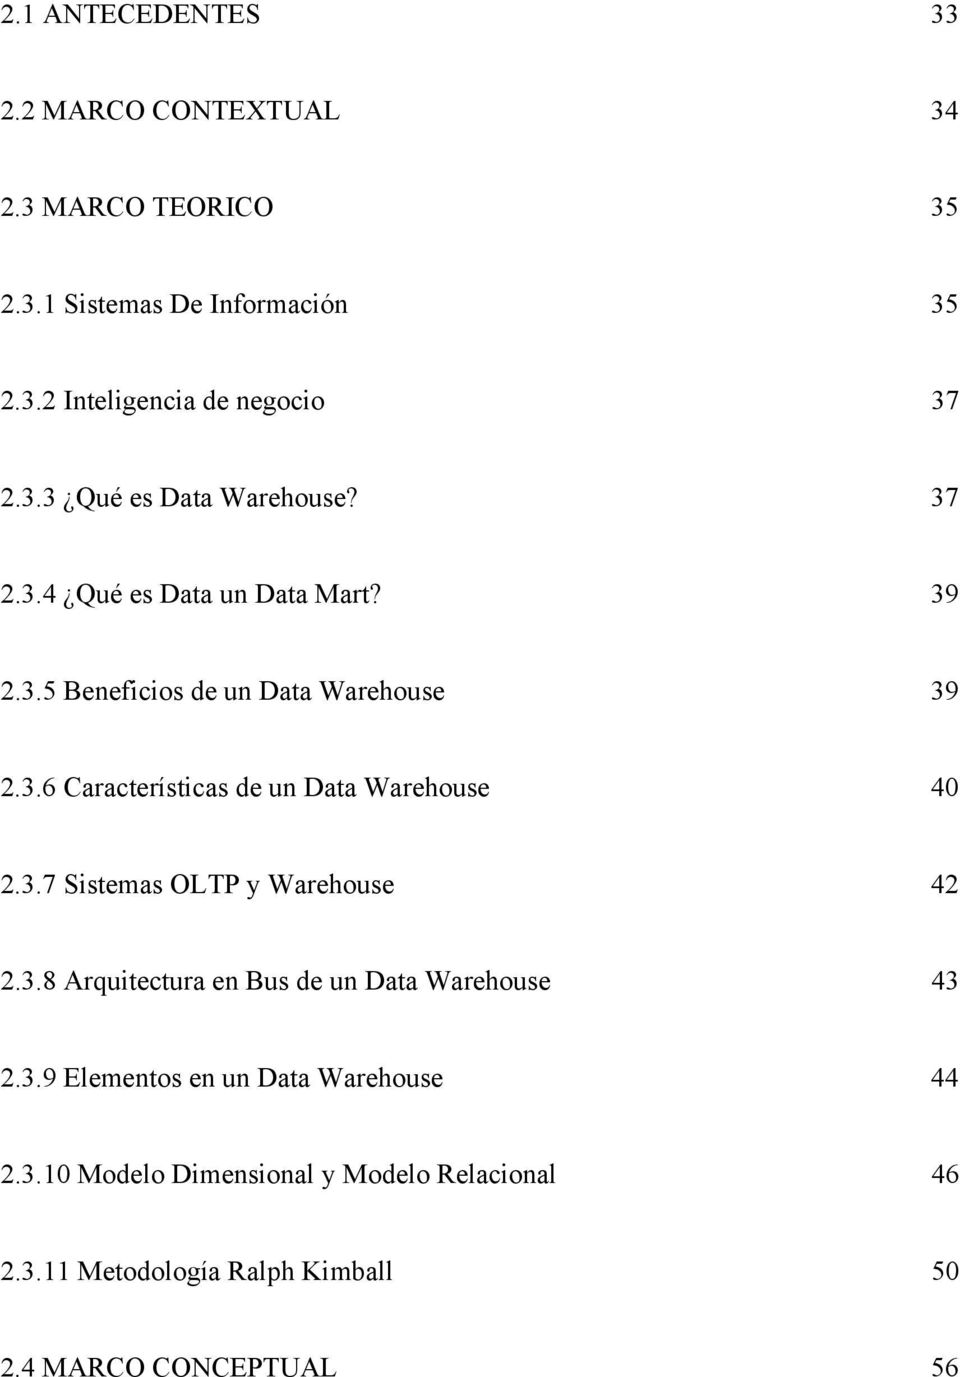 3.7 Sistemas OLTP y Warehouse 42 2.3.8 Arquitectura en Bus de un Data Warehouse 43 2.3.9 Elementos en un Data Warehouse 44 2.3.10 Modelo Dimensional y Modelo Relacional 46 2.